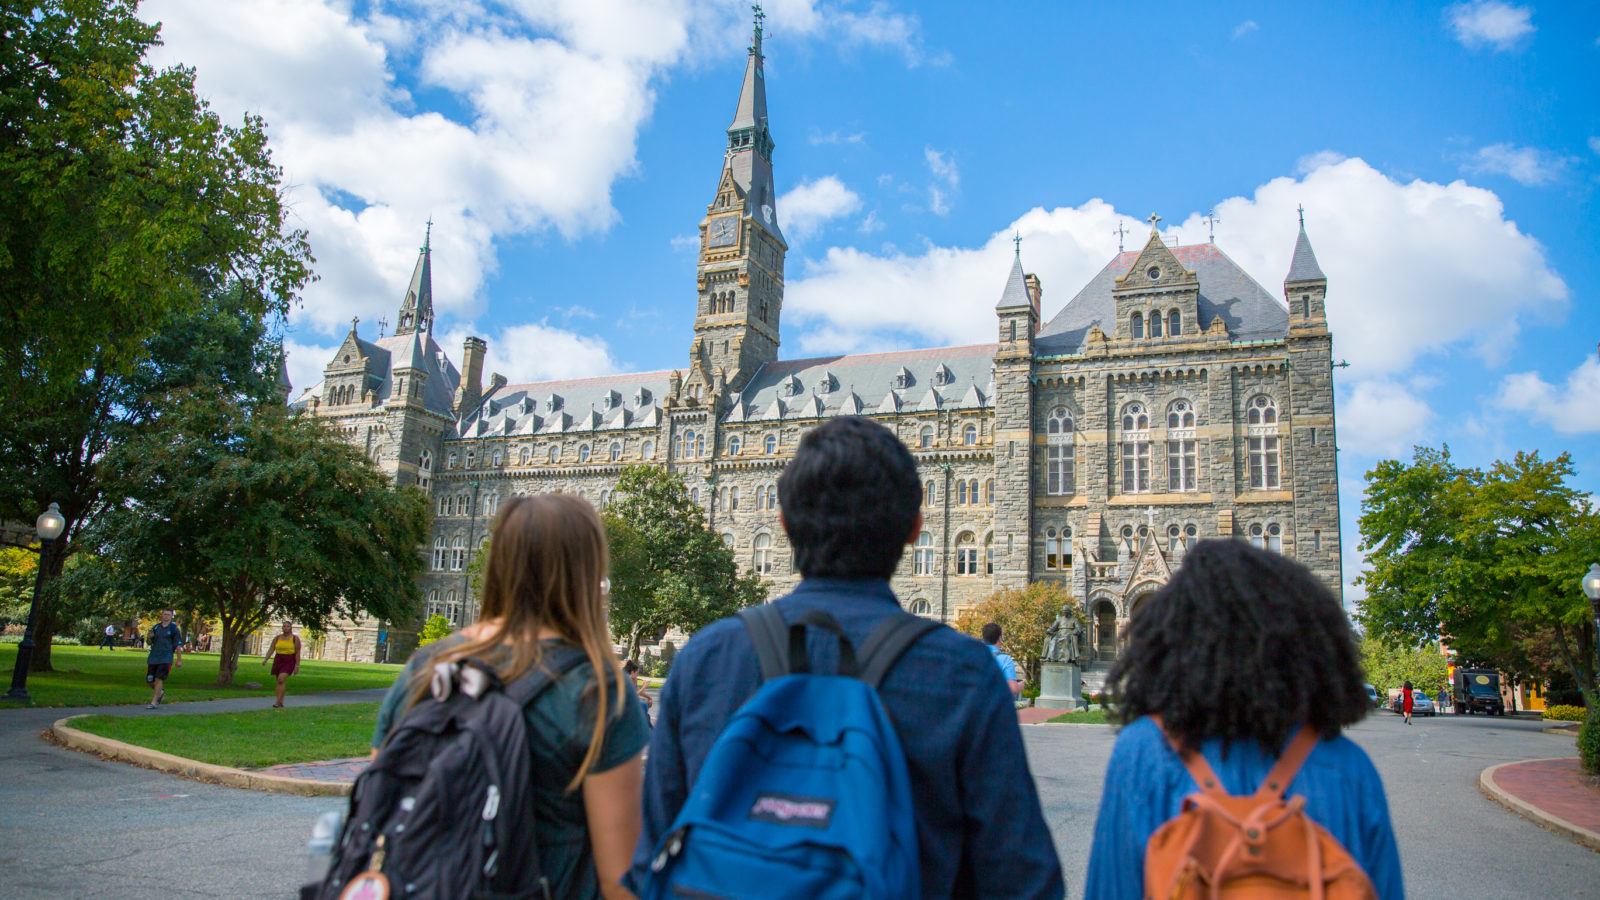 Three undergraduate students are walking towards Healy Hall. The backs of their heads and backpacks are visible as they walk towards the building.